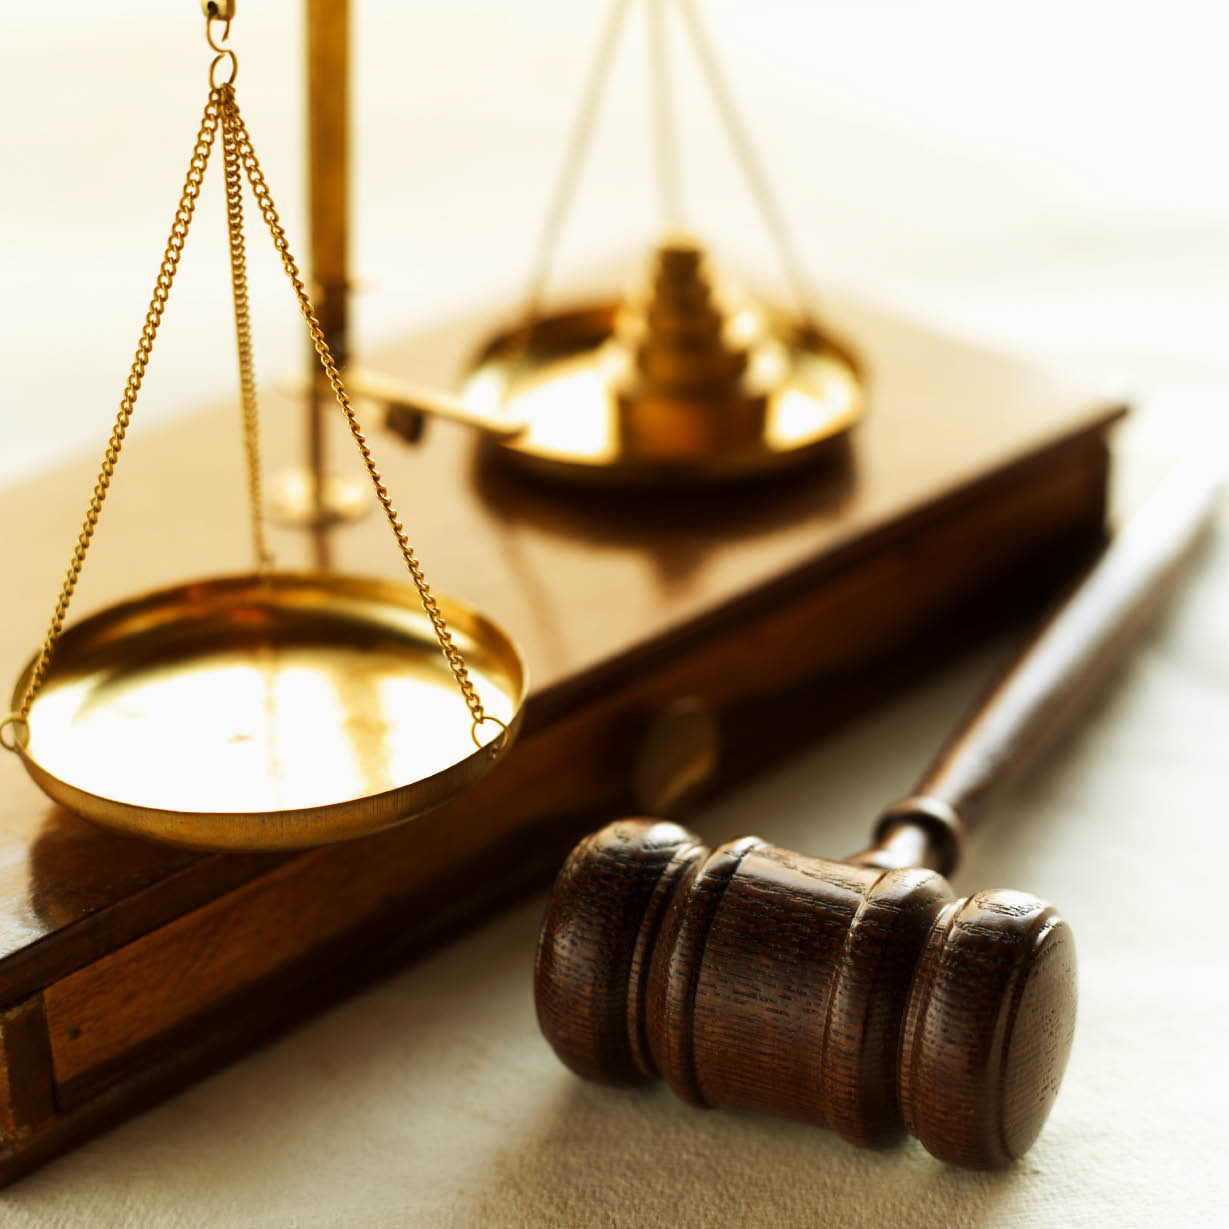 Bankruptcy attorney specialist